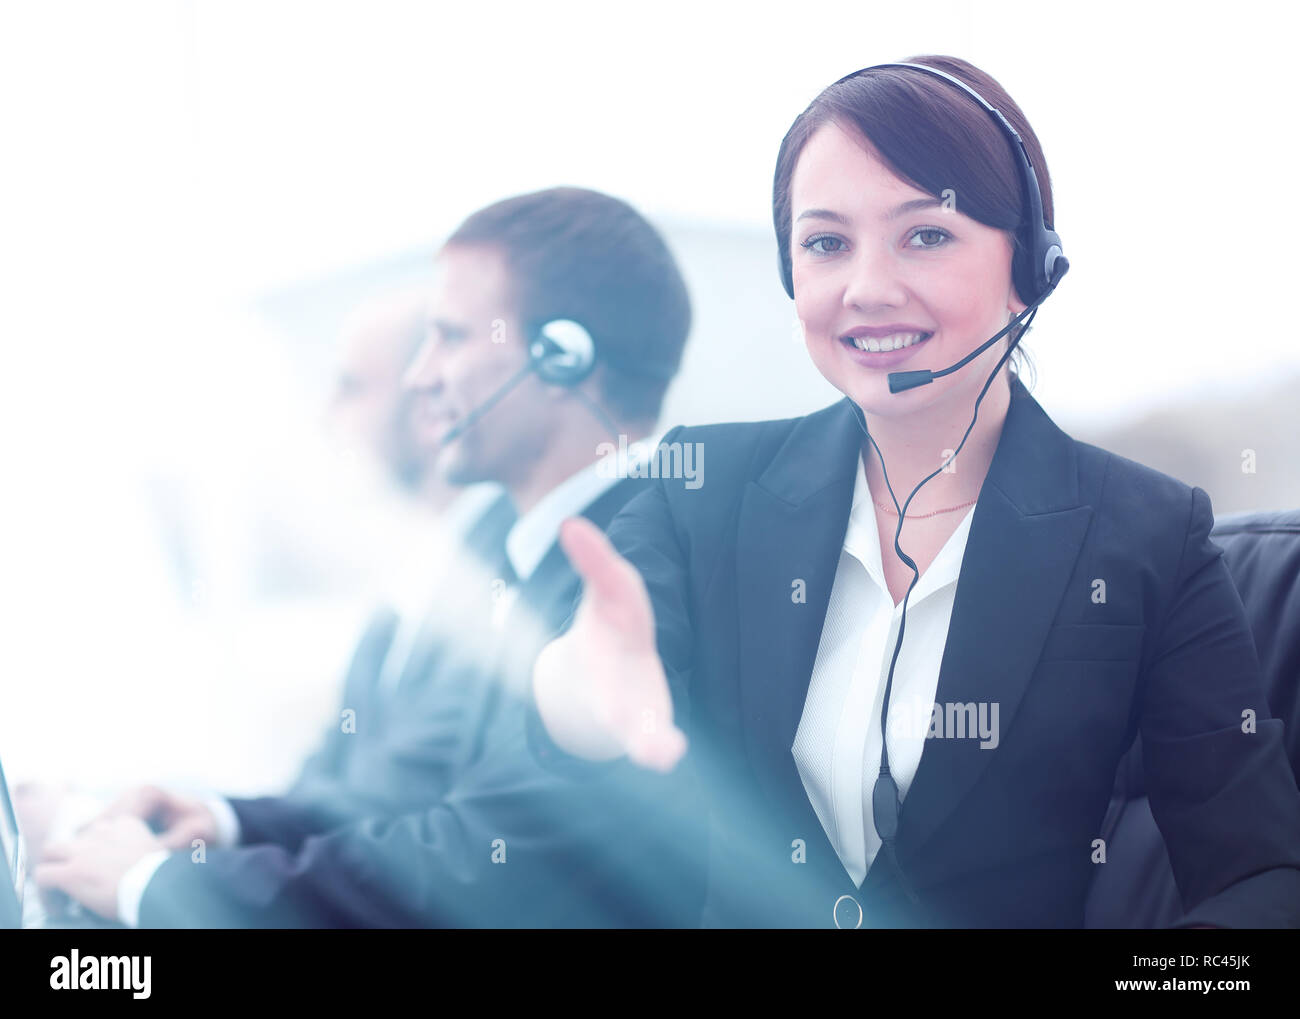 Manager of call center reaches out to shake hands. Stock Photo